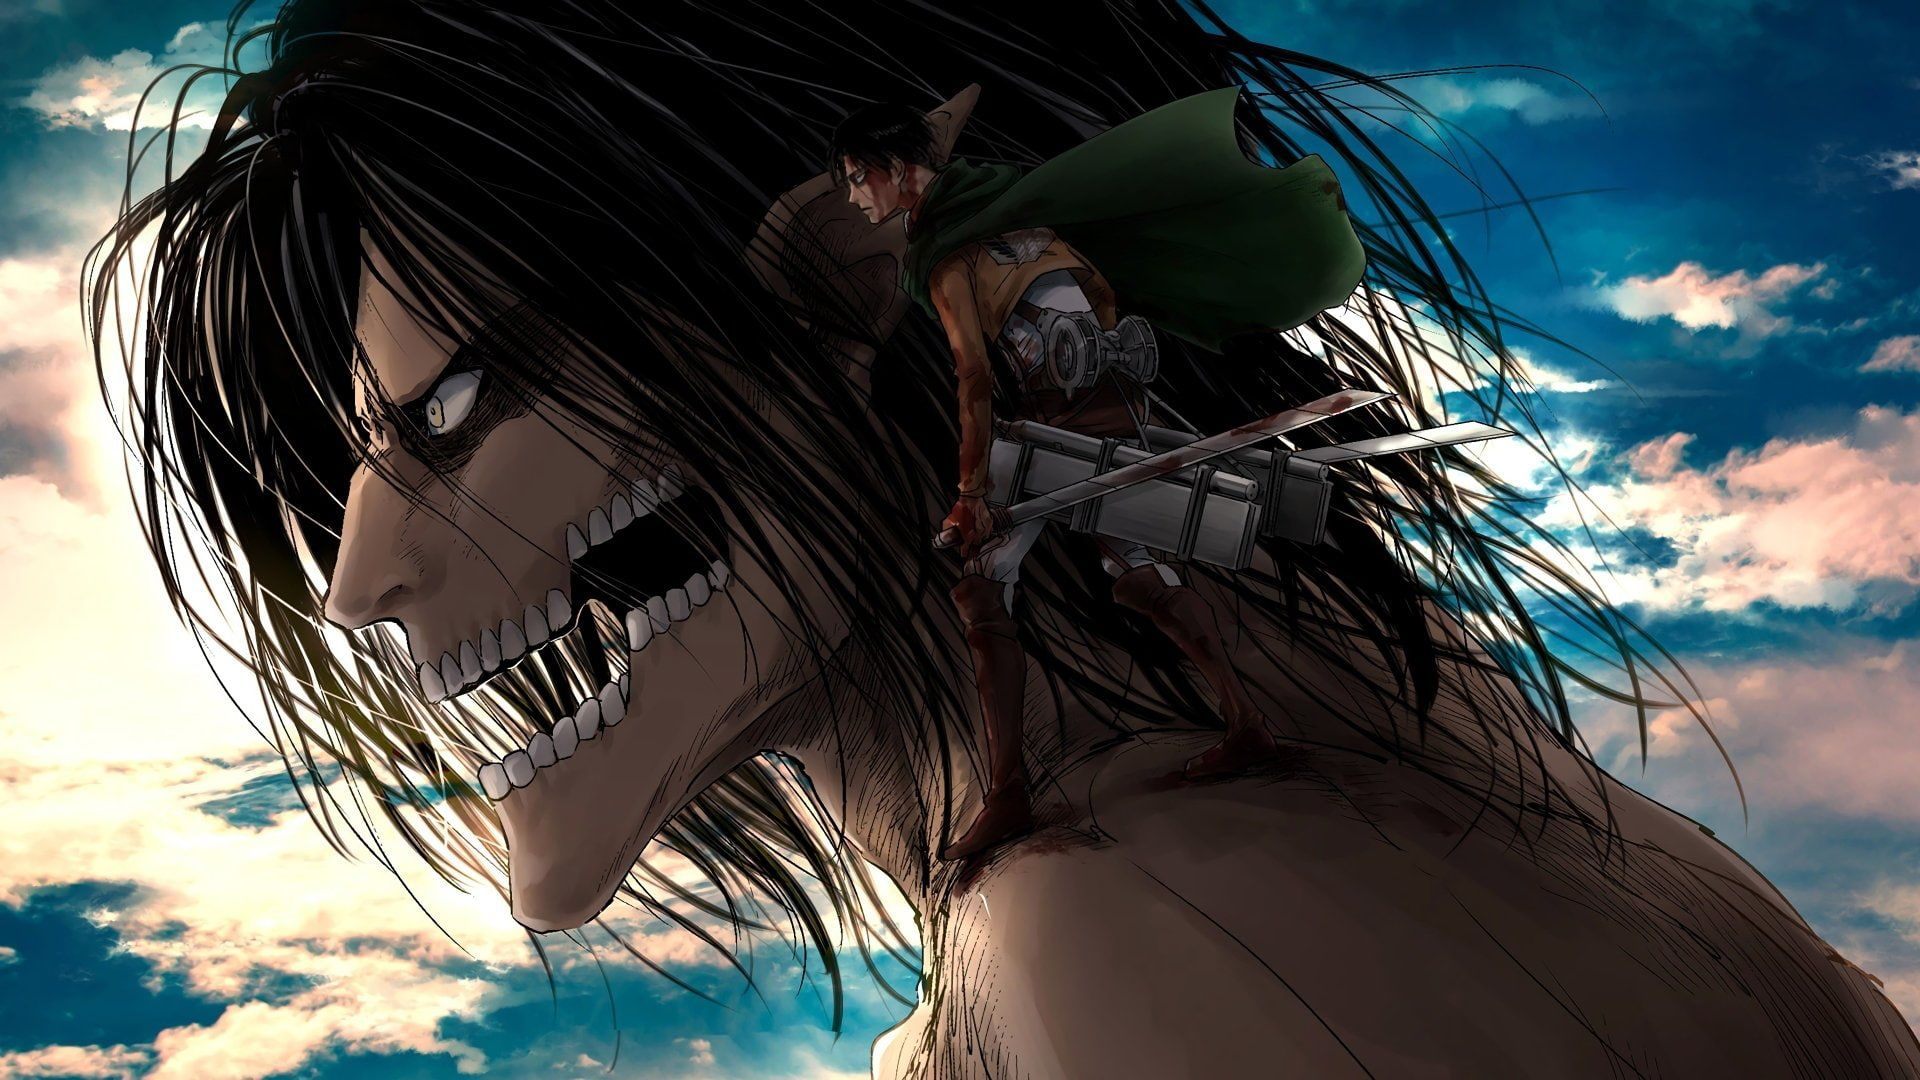 Anime Attack On Titan Eren Yeager Levi Ackerman 1080p Wallpaper Hdwallpaper Desktop Attack On Titan Eren Attack On Titan Fanart Attack On Titan